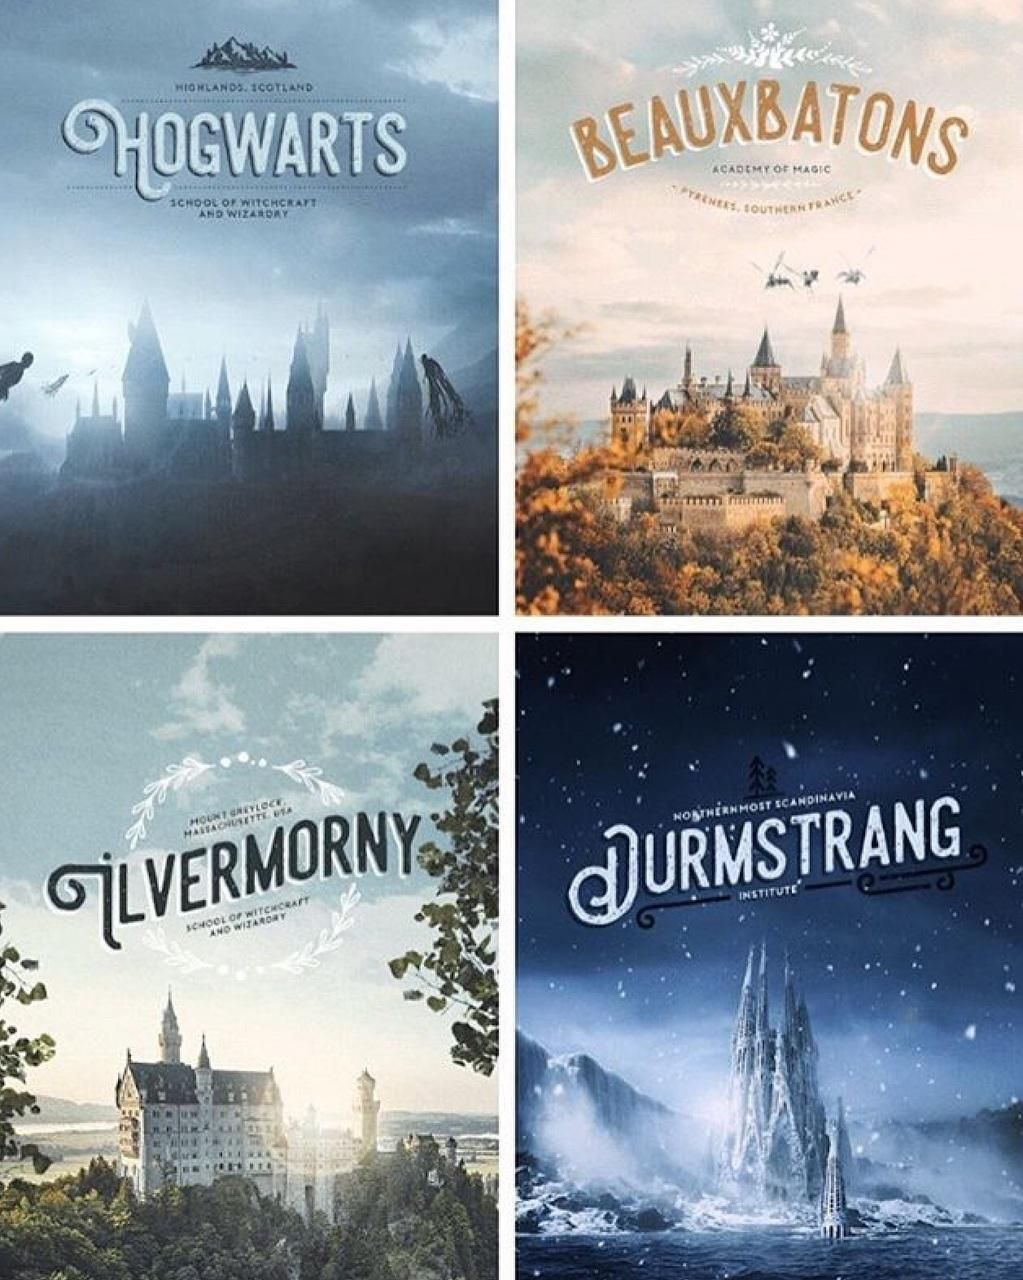 Hogwarts Beauxbatons Ilvermorny Durmstrang Harry Potter Series Harry Potter Universal Harry Potter Obsession Why when i see hogwarts and that french one taking our students away and go on without. hogwarts beauxbatons ilvermorny